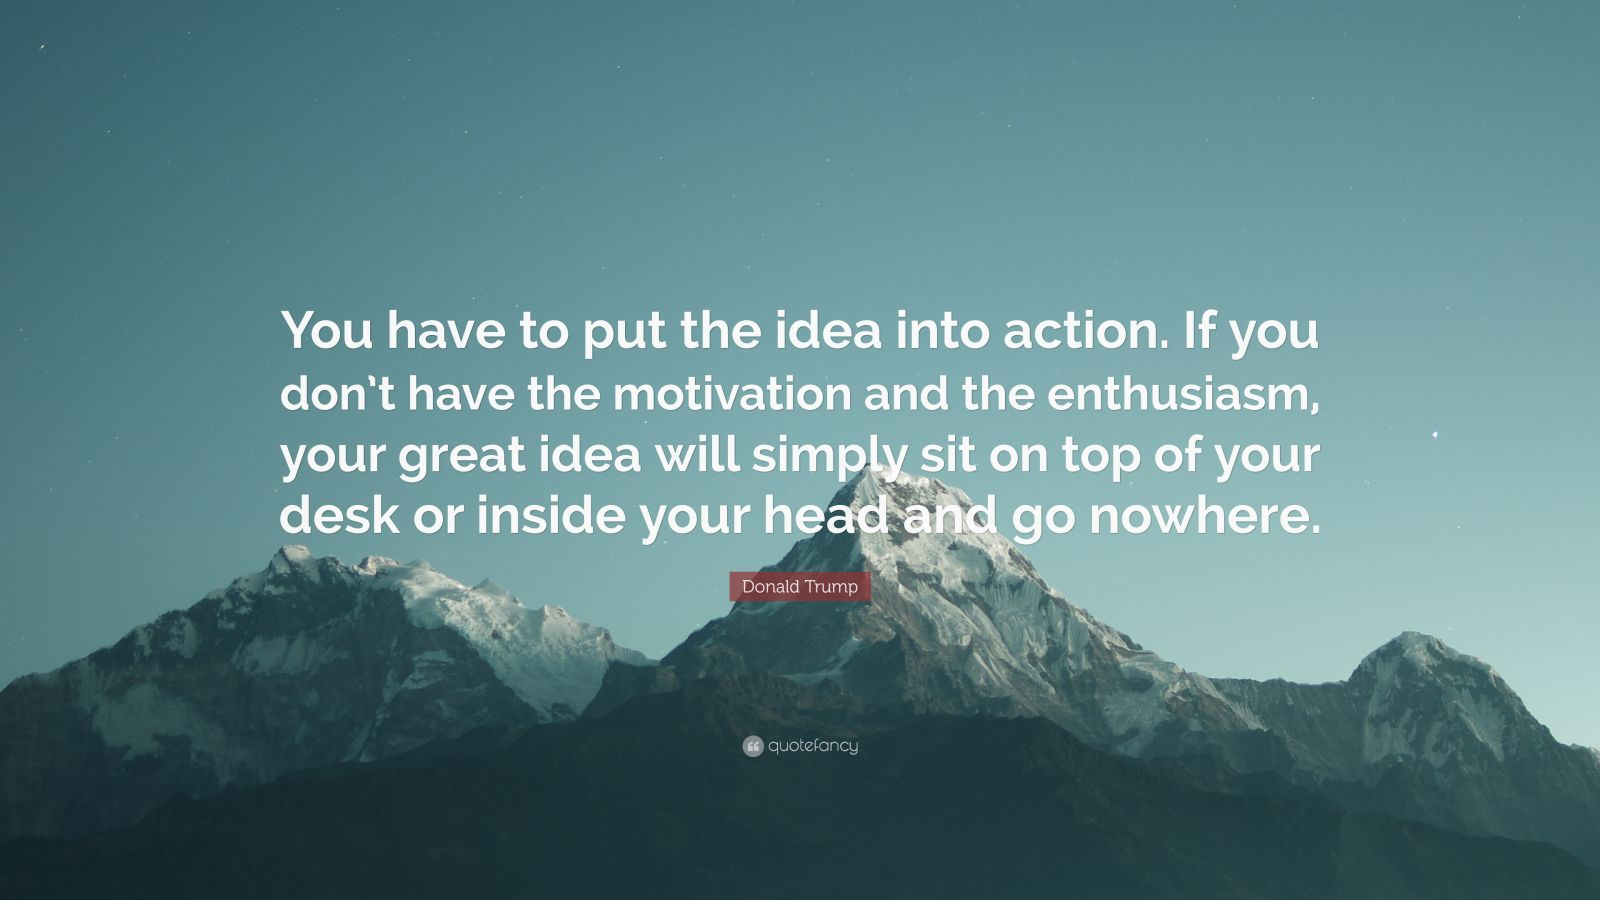 """Donald Trump Quote: """"You have to put the idea into action. If you don't have the motivation and the enthusiasm, your great idea will simply sit on top of your desk or inside your head and go nowhere."""""""